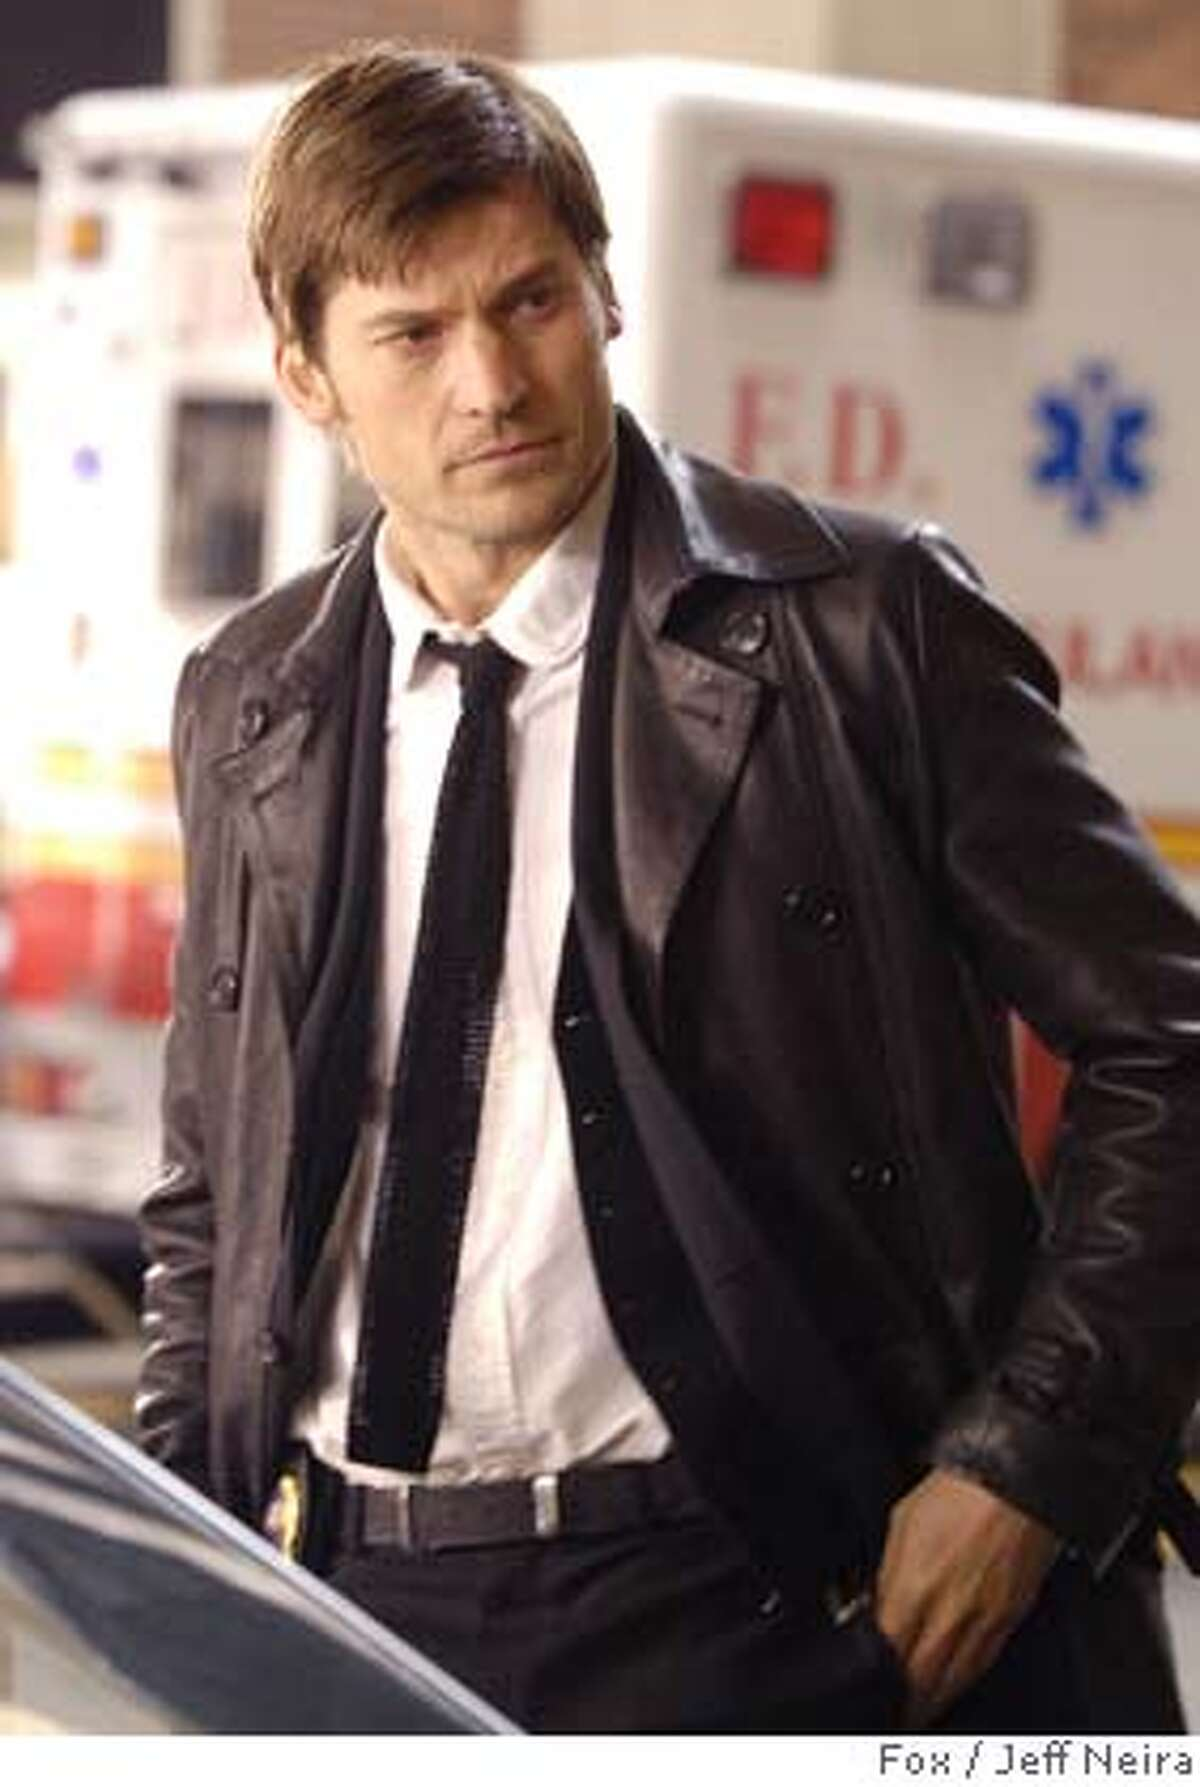 NEW AMSTERDAM: New York Police Detective John Amsterdam (Nikolaj Coster-Waldau) is a man who has been granted eternal life until he meets his soulmate in the new drama NEW AMSTERDAM previewing Tuesday, March 4 (9:00-10:00 PM ET/PT) on FOX. CR: Jeff Neira/FOX